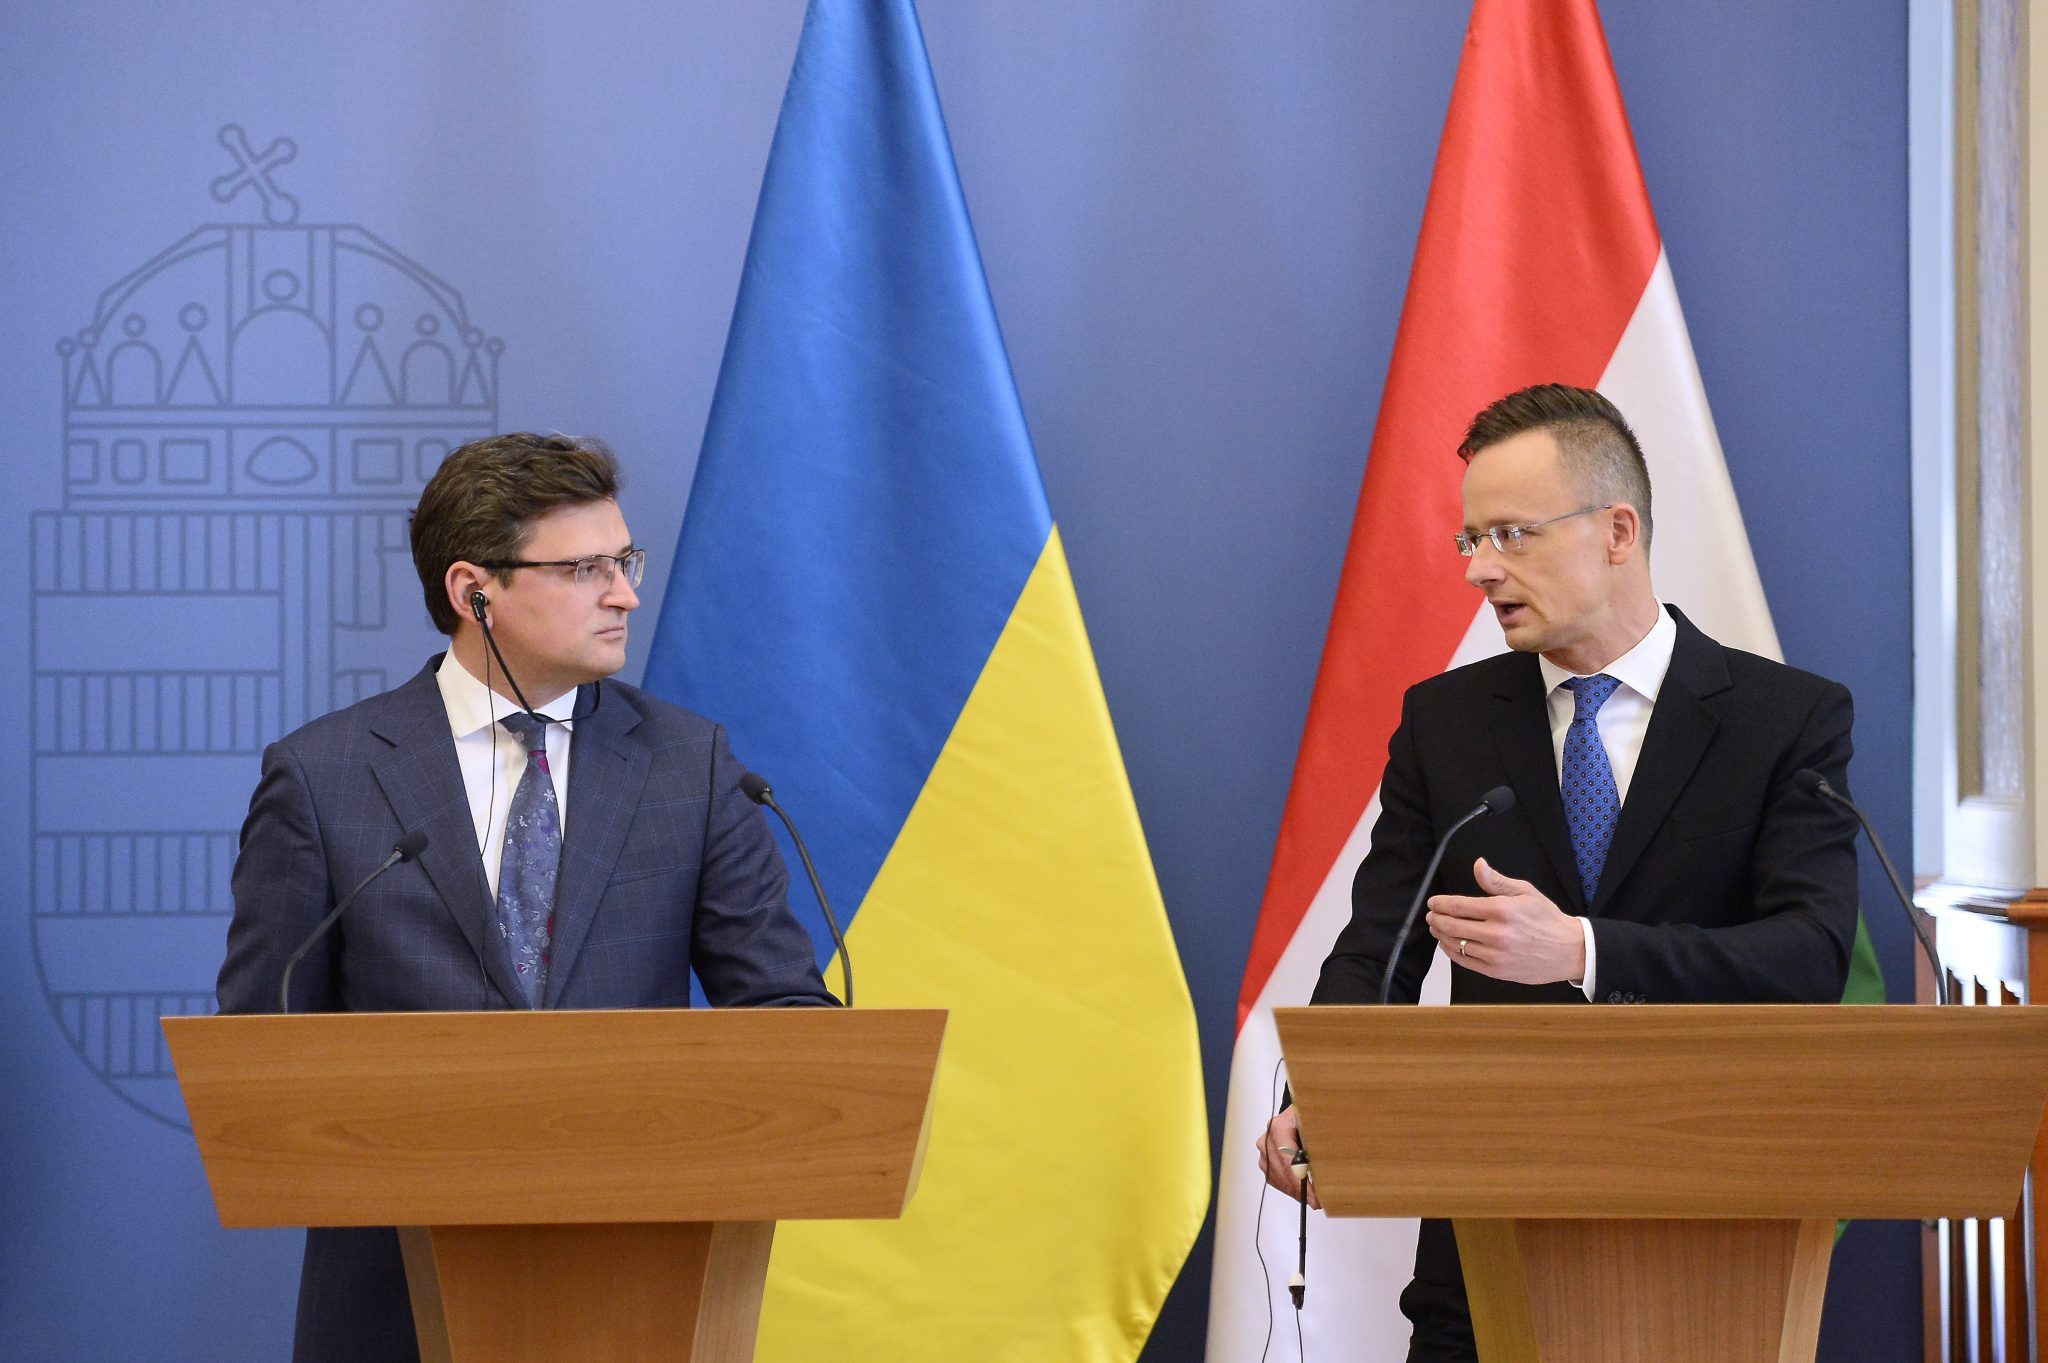 Szijjártó: Hungary, Ukraine Committed to Settling Disputes